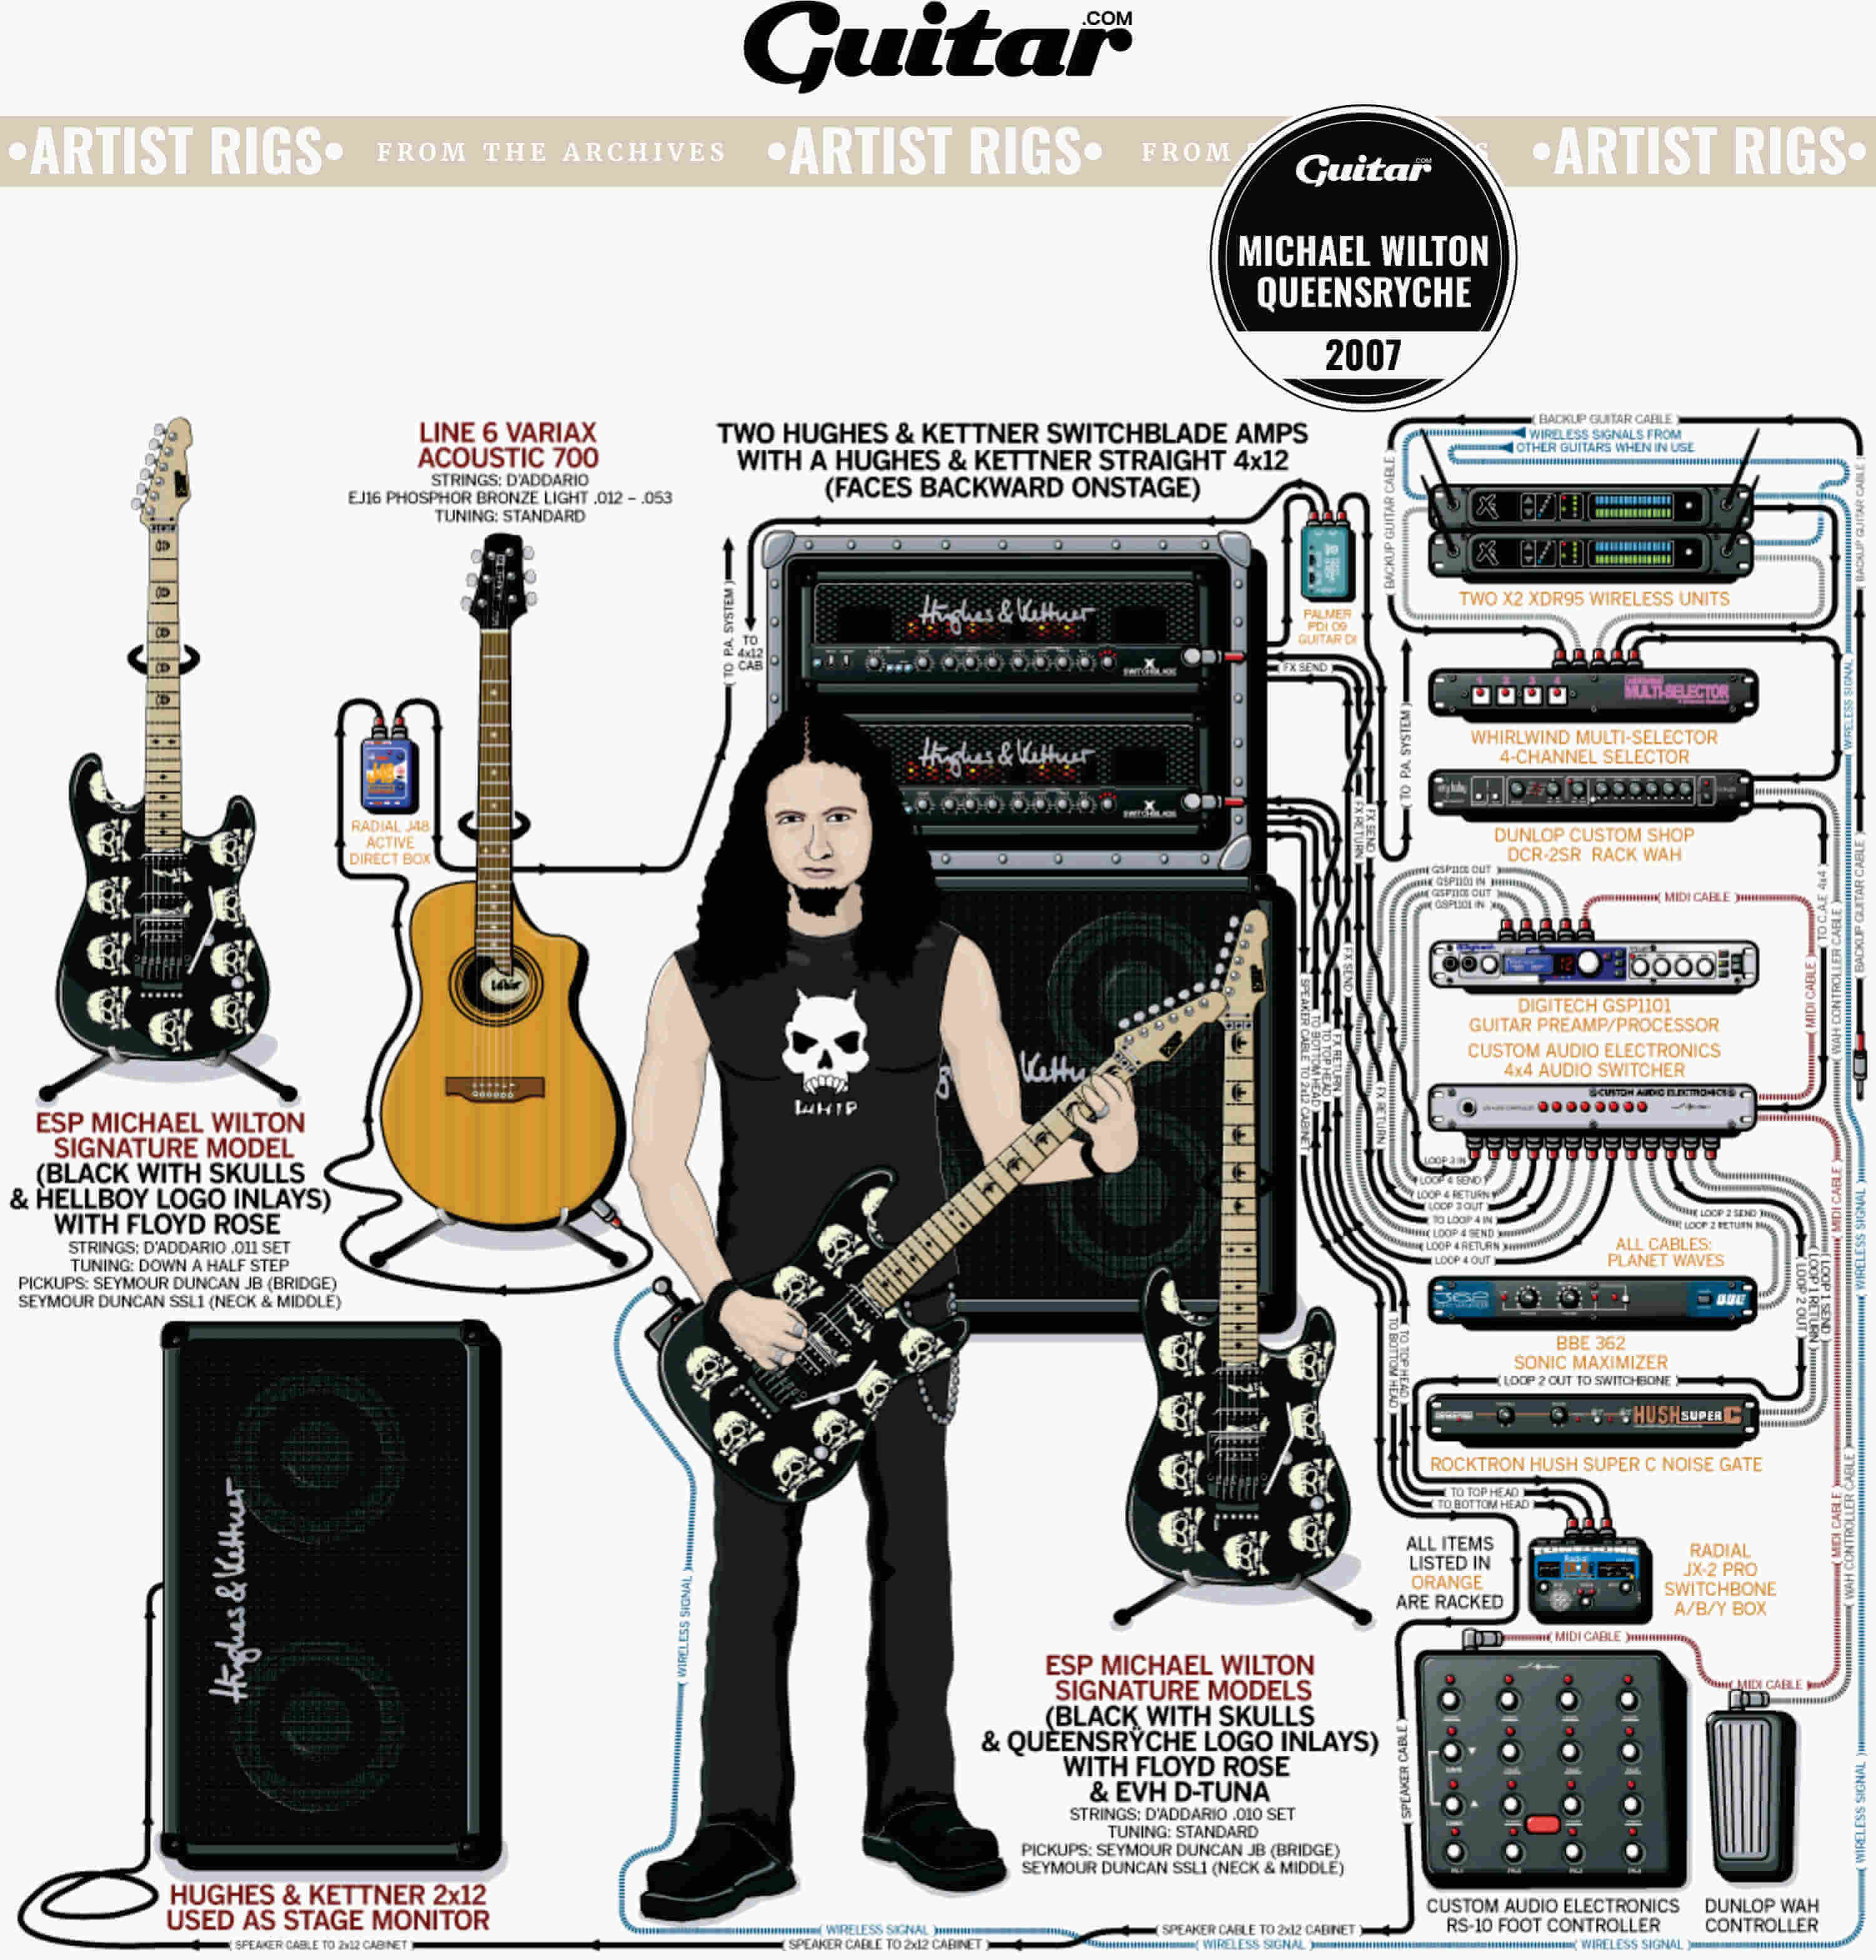 Rig Diagram: Michael Wilton, Queensryche (2007)